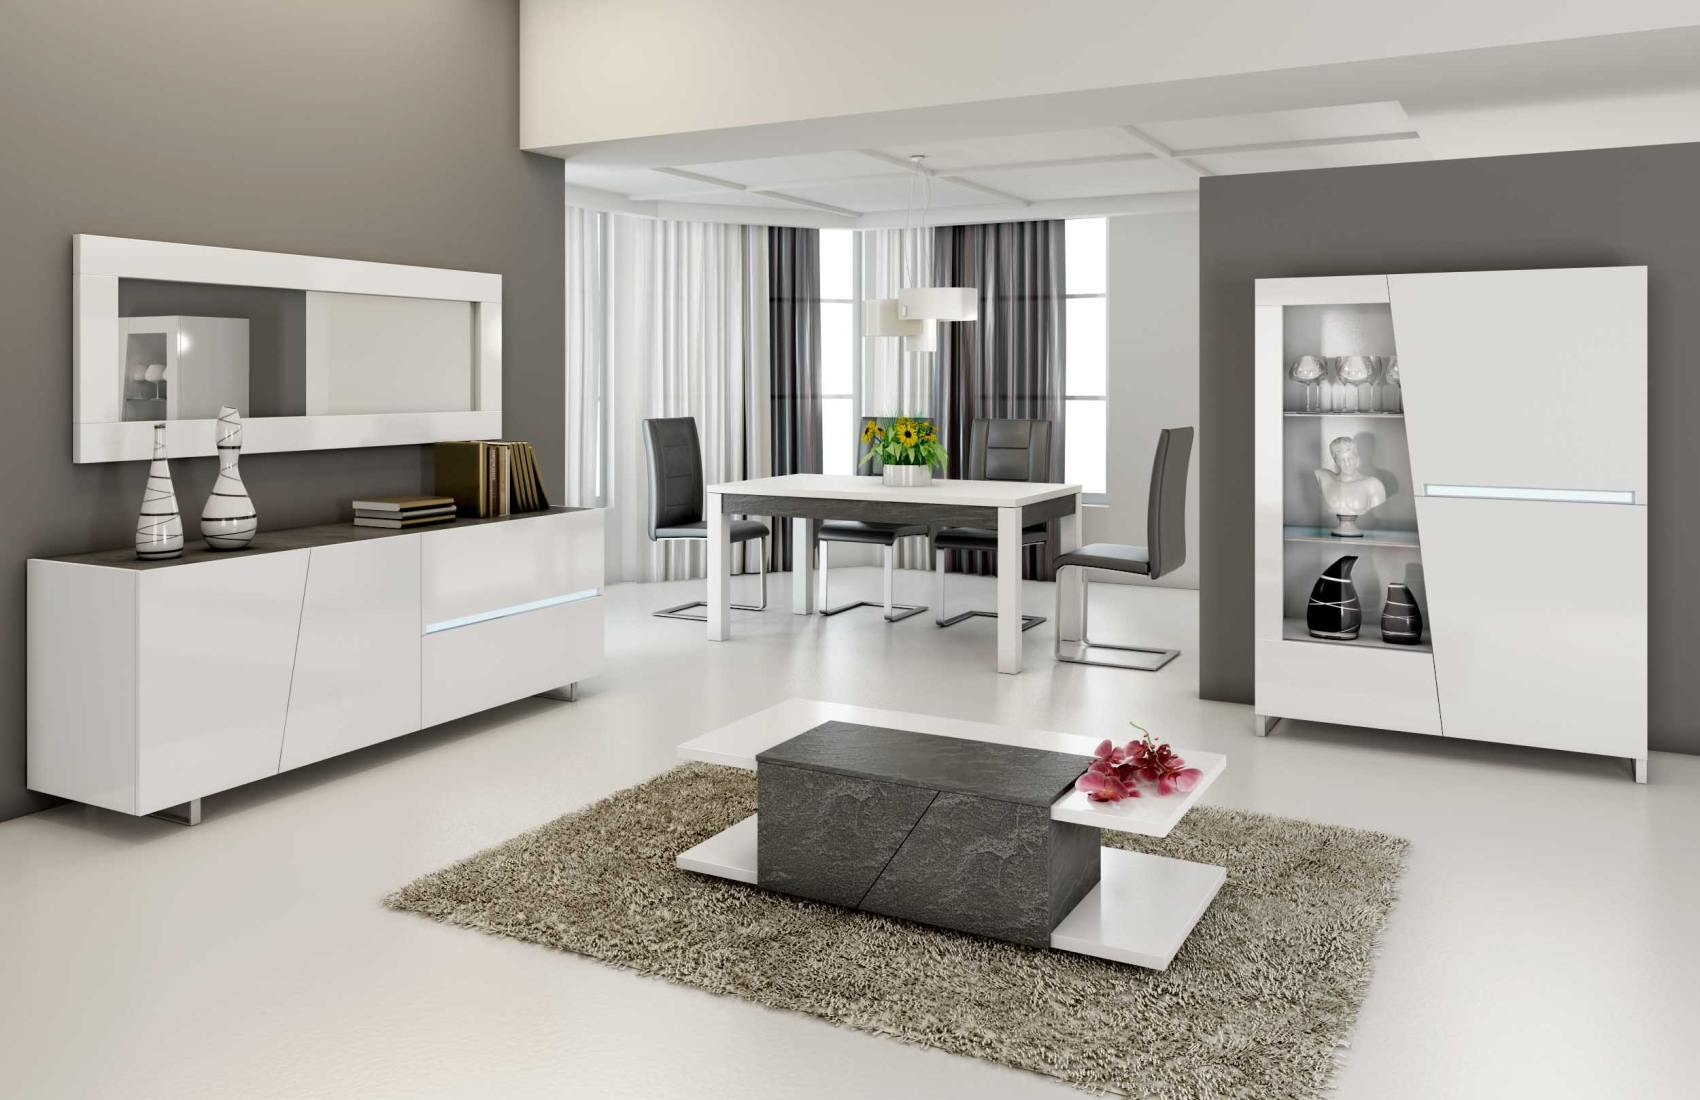 amenagement cuisine salon salle a manger face aux prix de. Black Bedroom Furniture Sets. Home Design Ideas